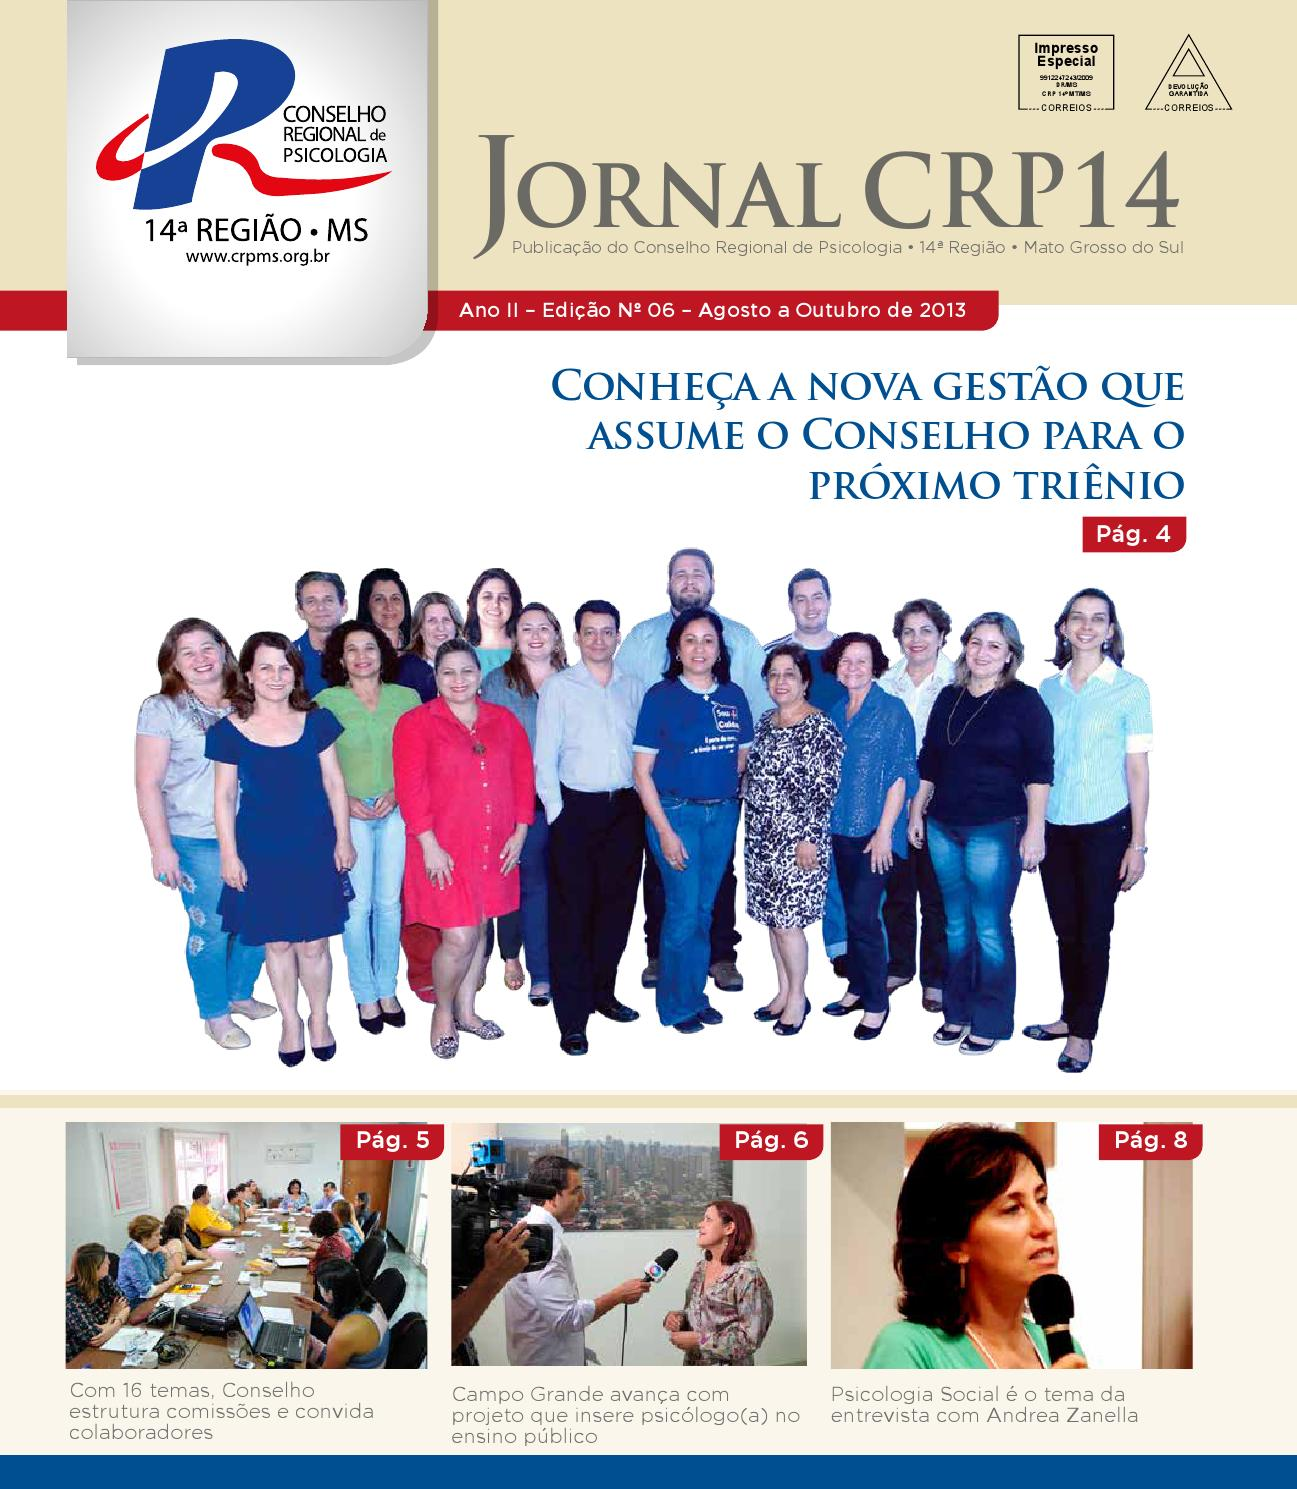 Jornal CRP12 N.12   Ago.Out 12 by Crp ms Psicologia   issuu